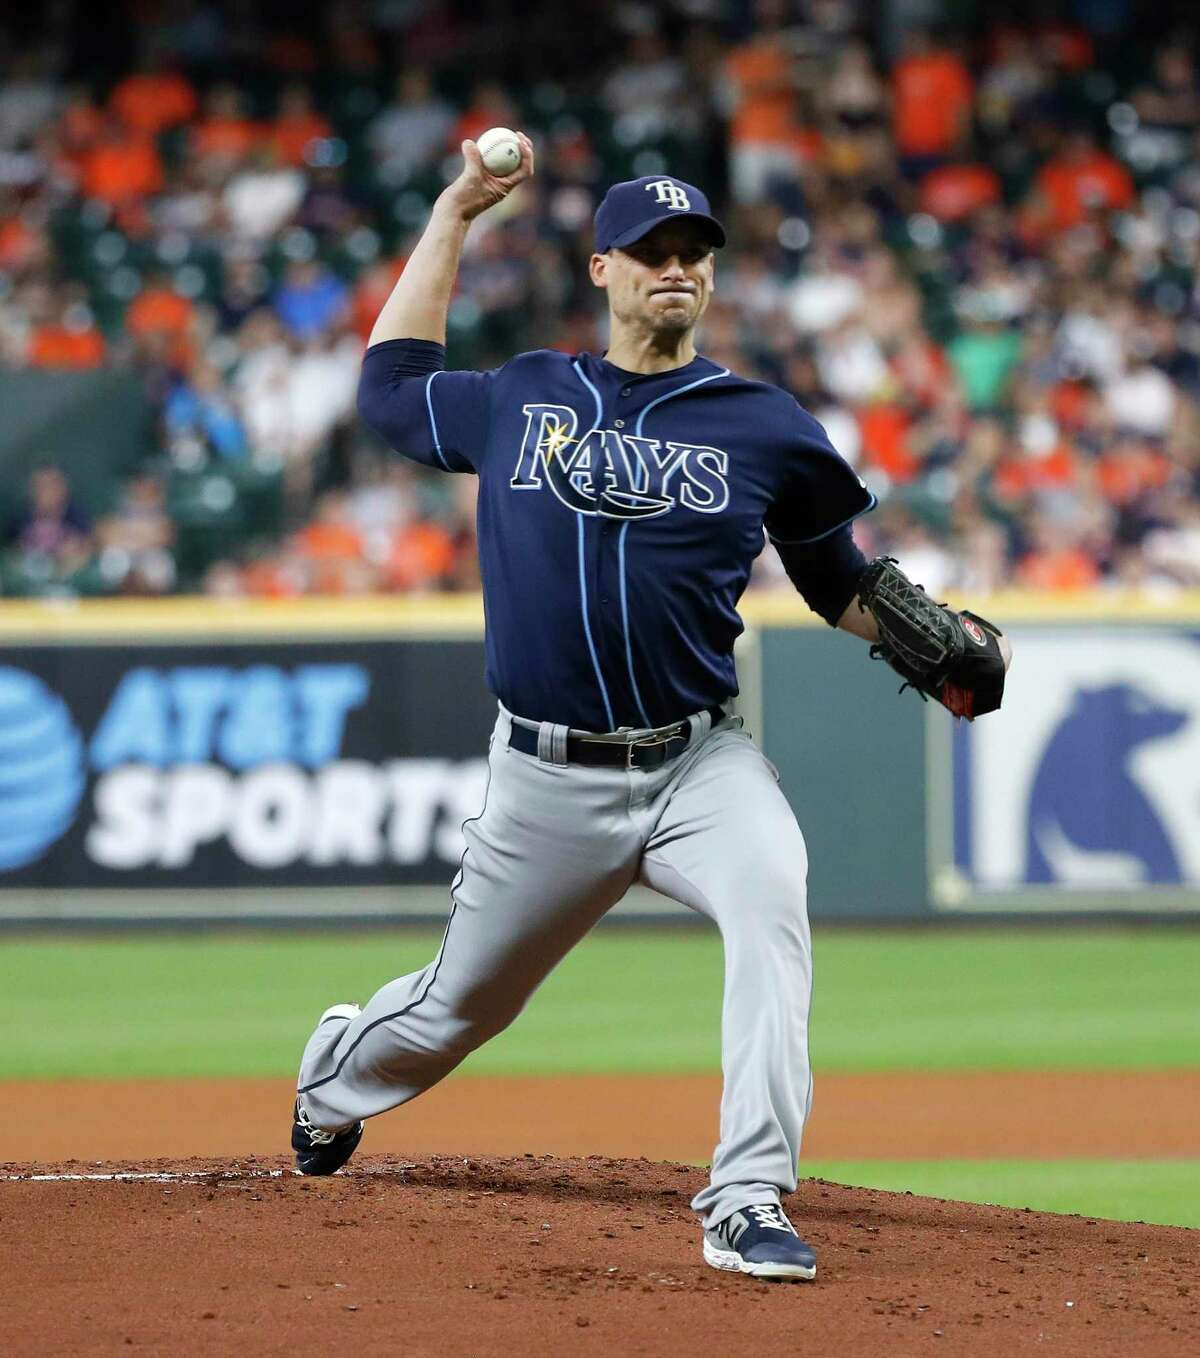 Righthander Charlie Morton played a key role in the Astros' run to the 2017 World Series title, and the Rays hope he can help start their postseason run off on the right foot when he takes the mound Wednesday night.